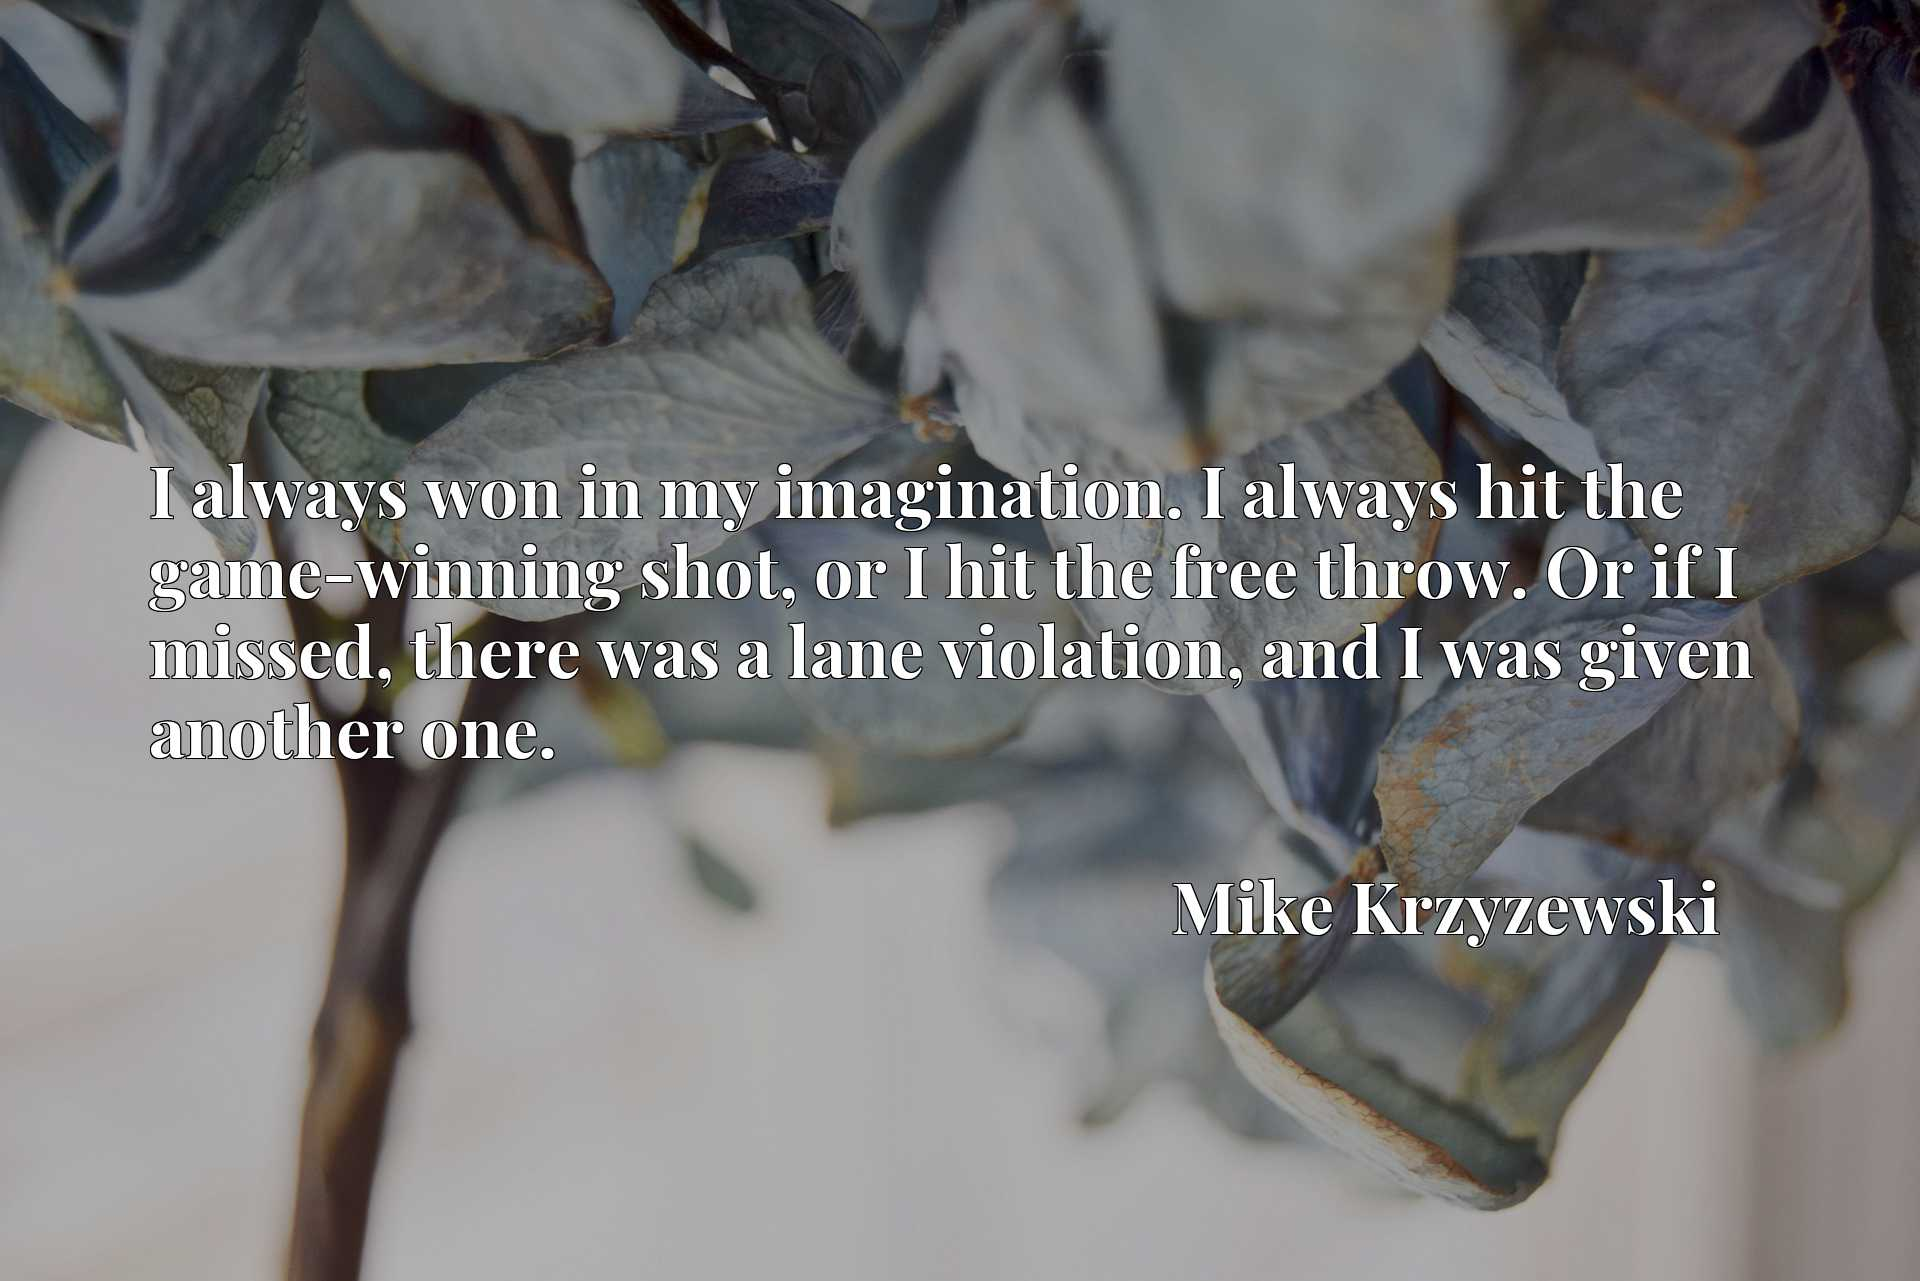 Quote Picture :I always won in my imagination. I always hit the game-winning shot, or I hit the free throw. Or if I missed, there was a lane violation, and I was given another one.